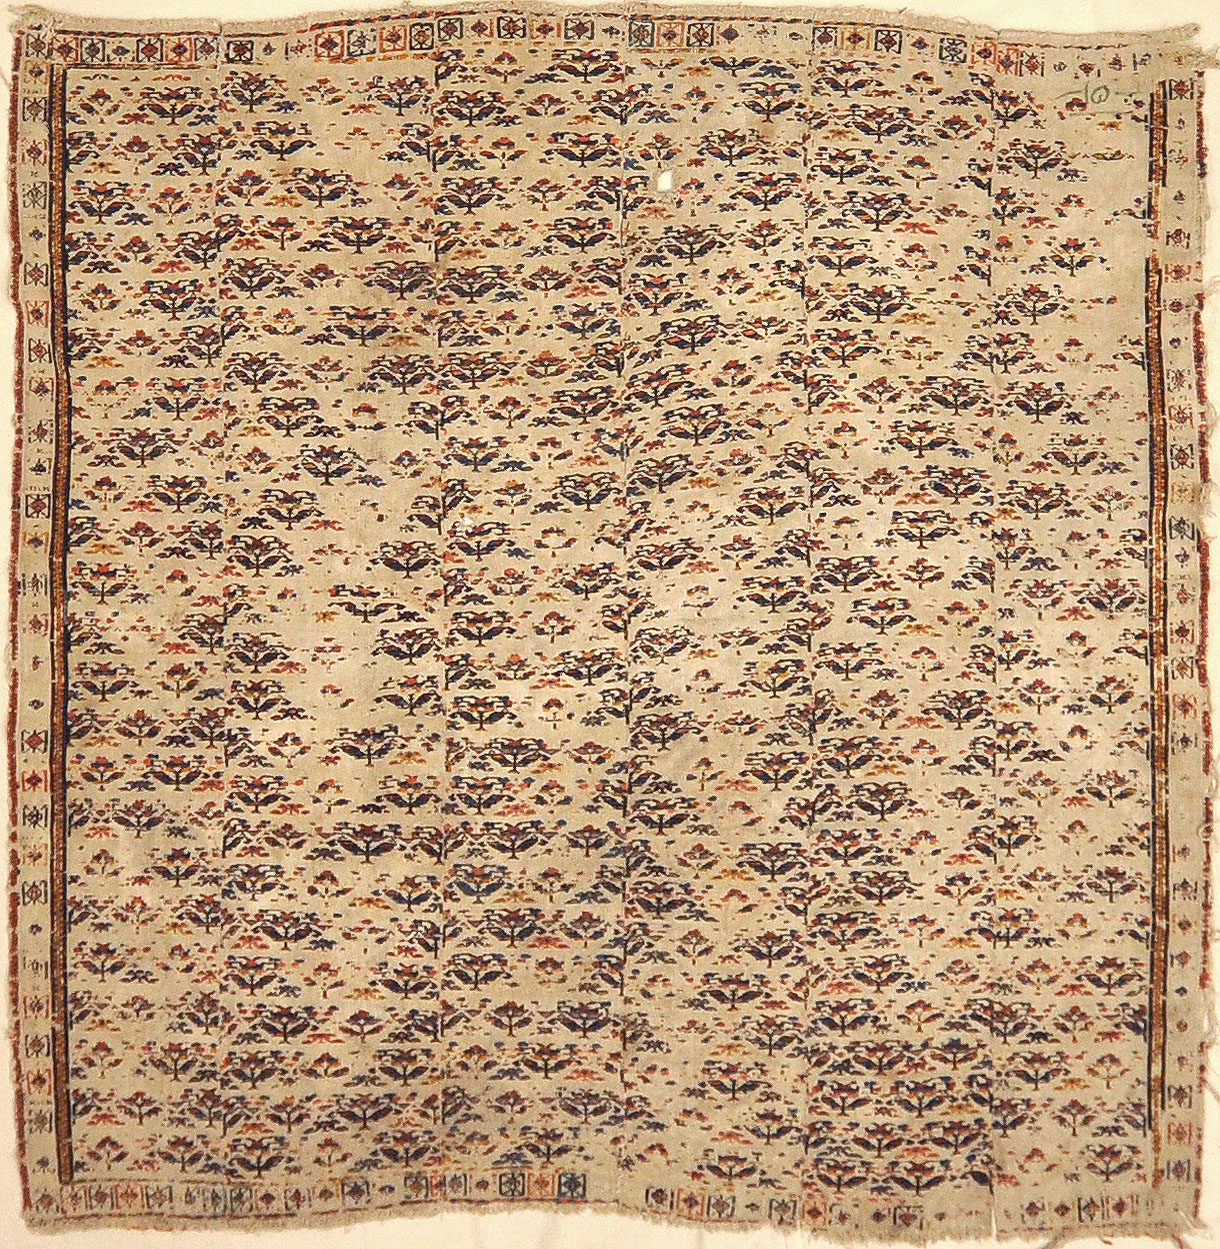 Fine Antique Soumak Rug. A piece of genuine authentic antique woven carpet art sold by Santa Barbara Design Center Rugs and More.